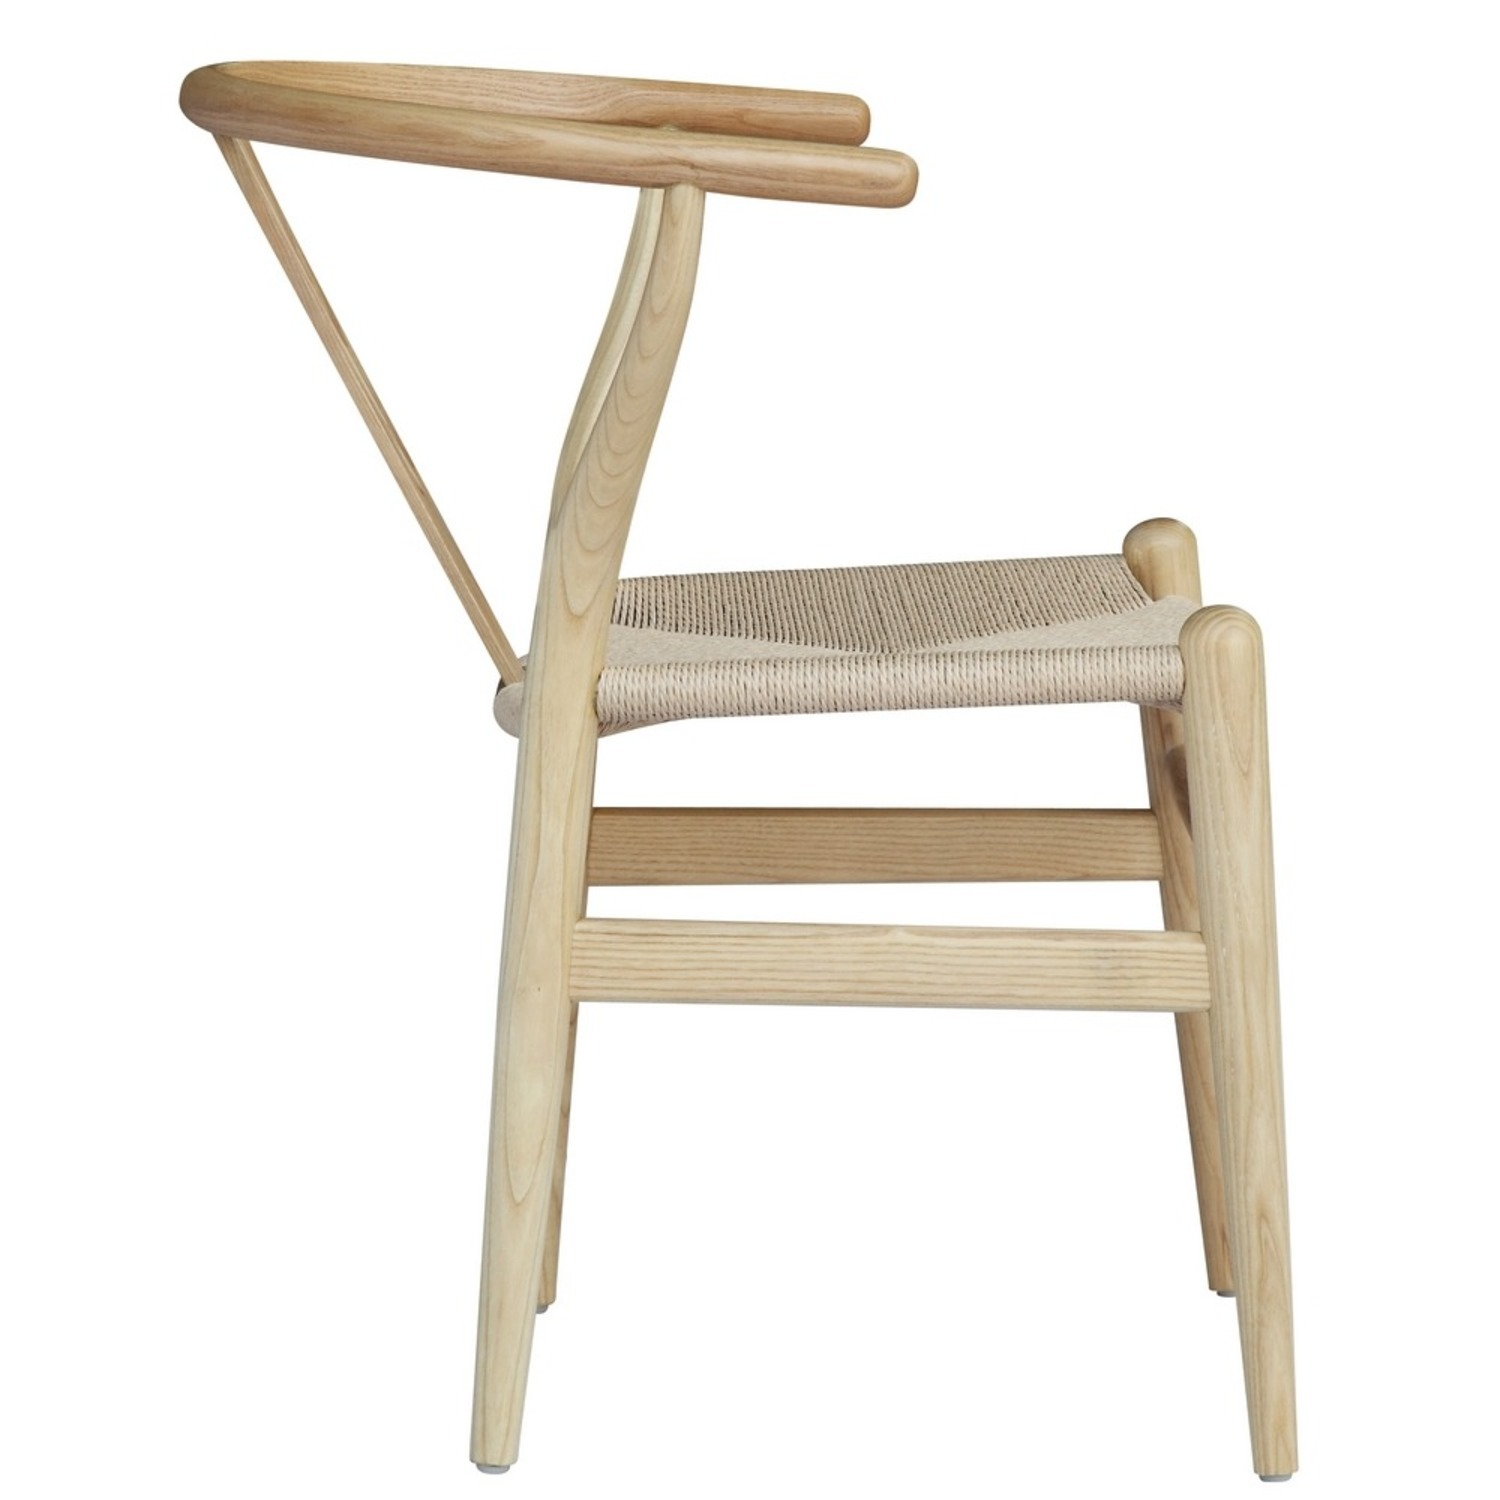 Dining Chair In Natural Frame & Natural Hemp Seat - image-1